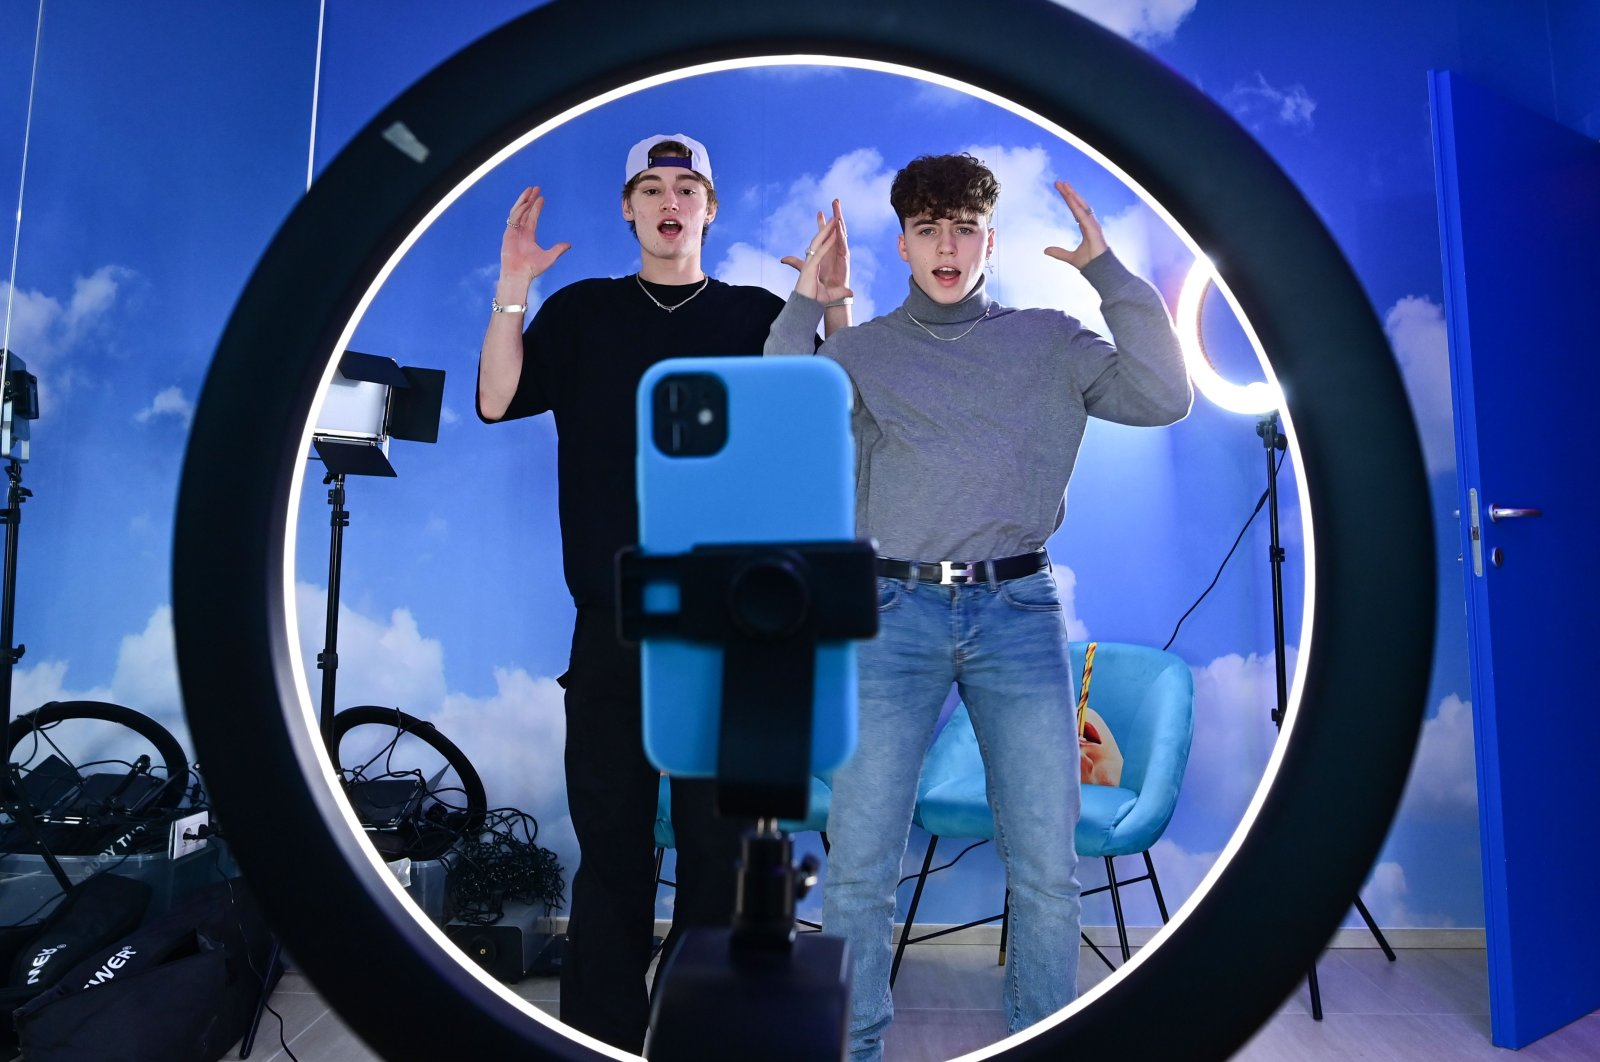 "(L-R) TikTok influencers Marco Bonetti and Davide Moccia perform a video in the ""Defhouse"", a TikTok influencers incubator in Milan, on January 21, 2021. (AFP Photo)"